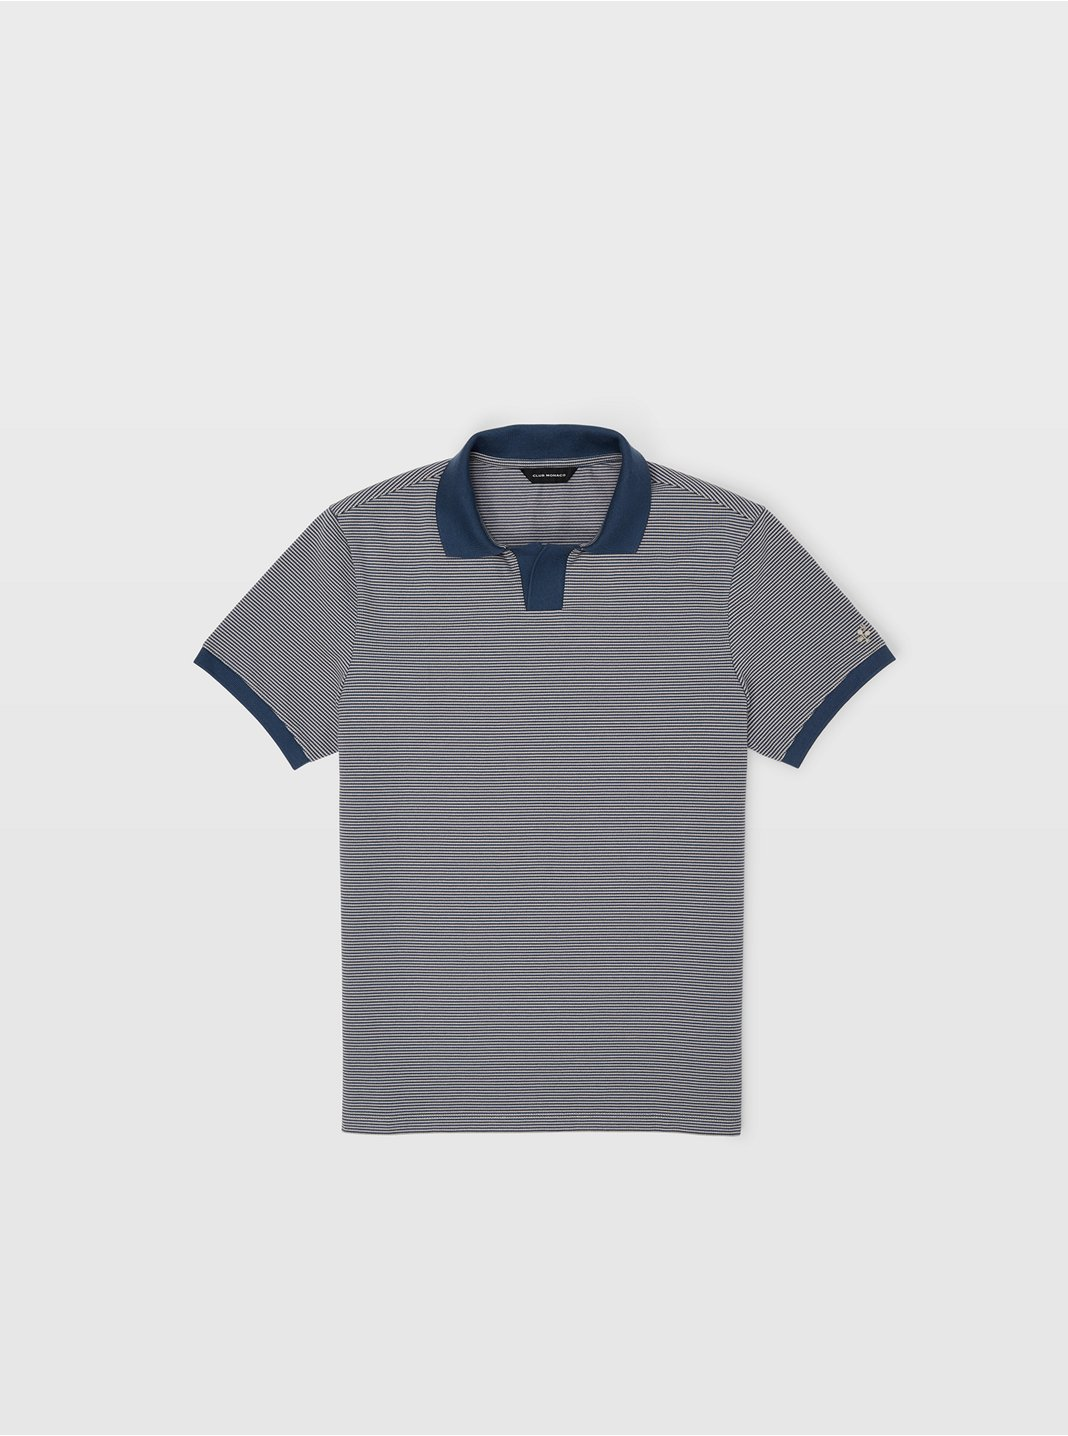 Johnny Collar Striped Polo